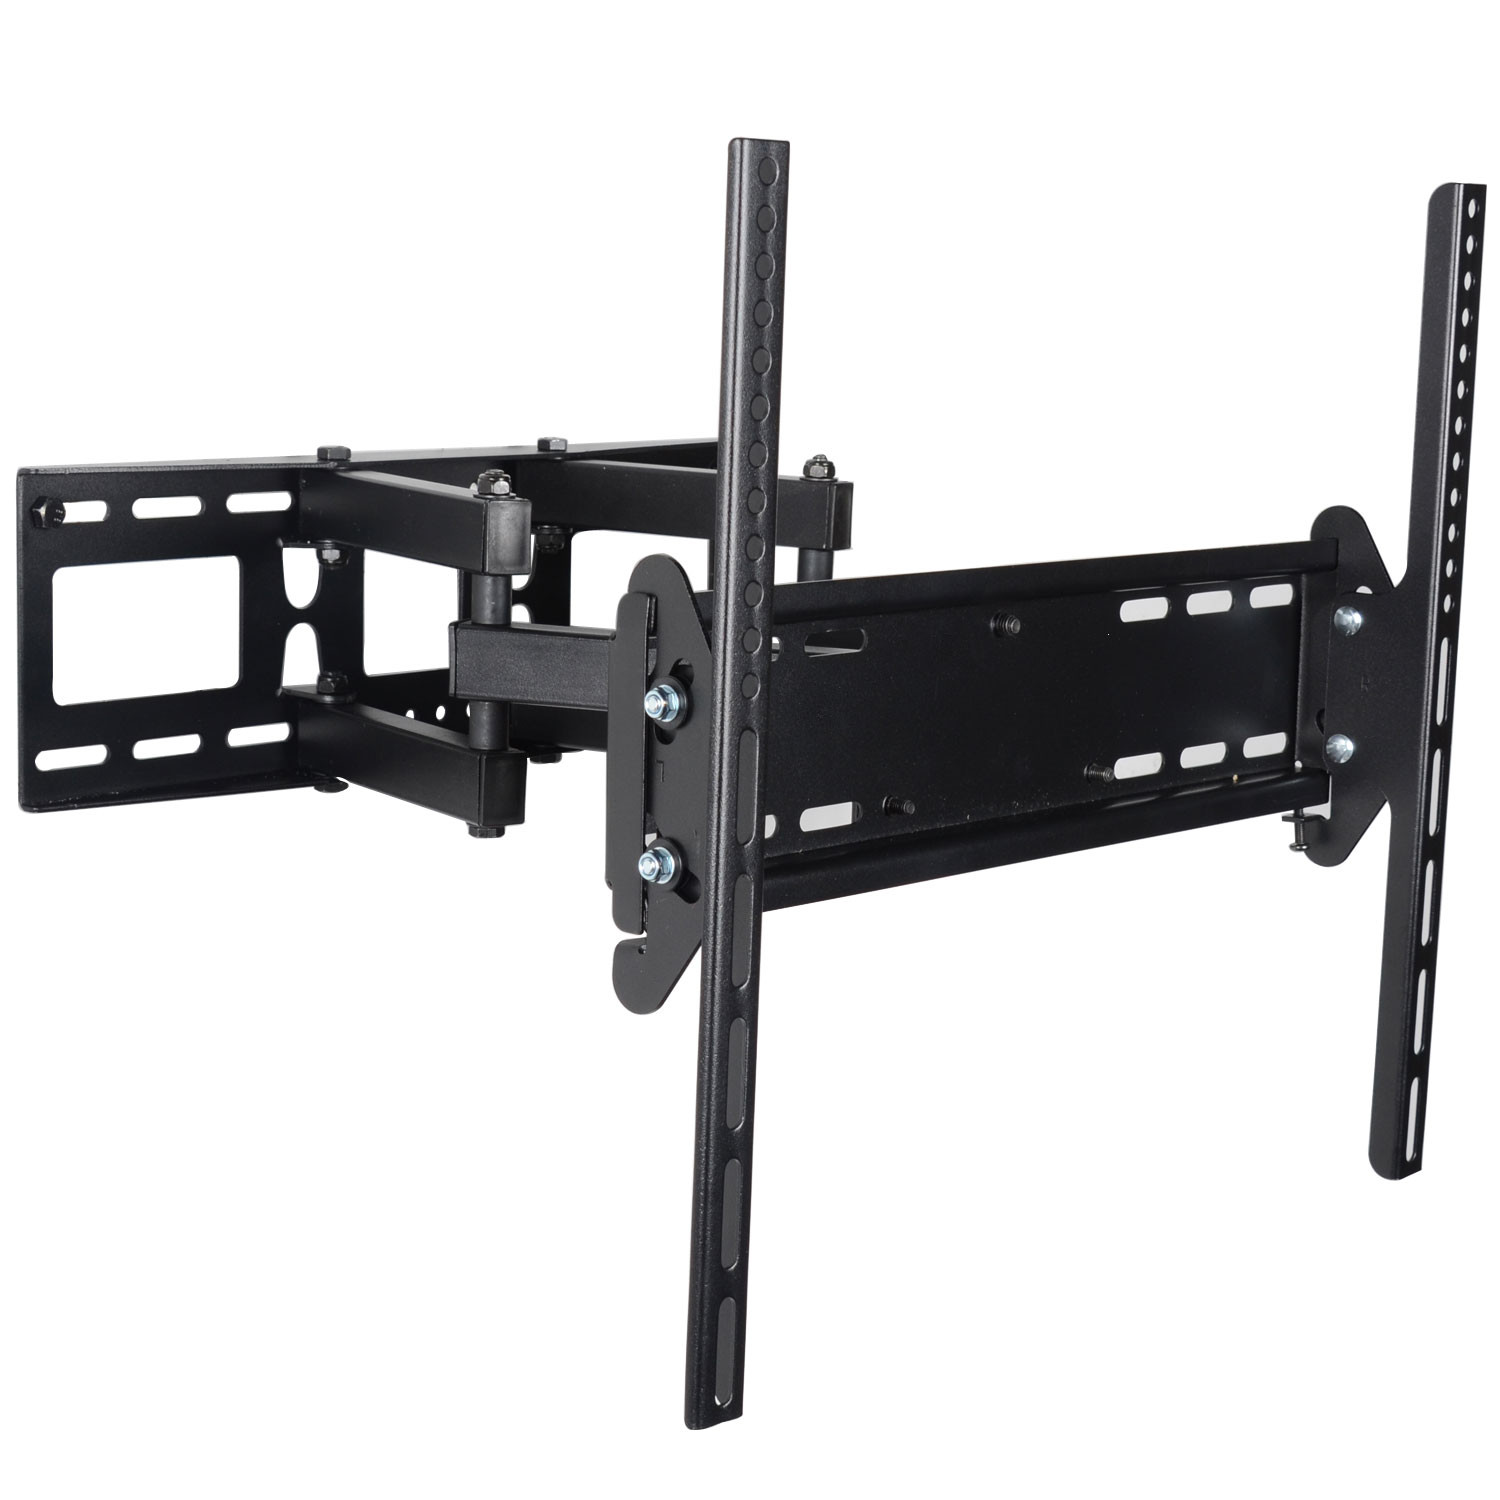 VideoSecu Full Motion TV Wall Mount for Sharp AQUOS 32 40...